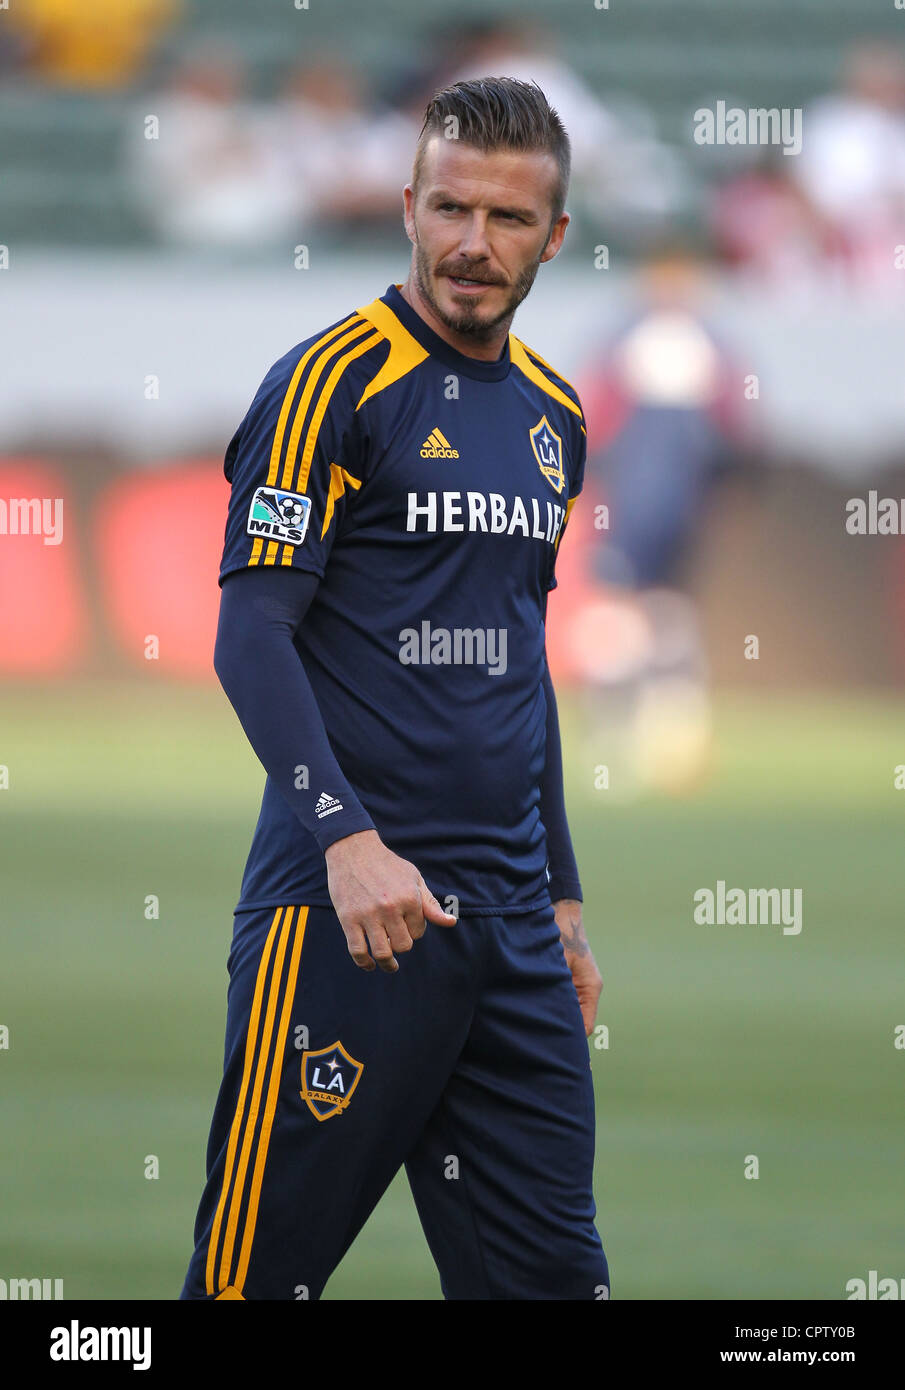 David Beckham playing for the LA Galaxy - Stock Image